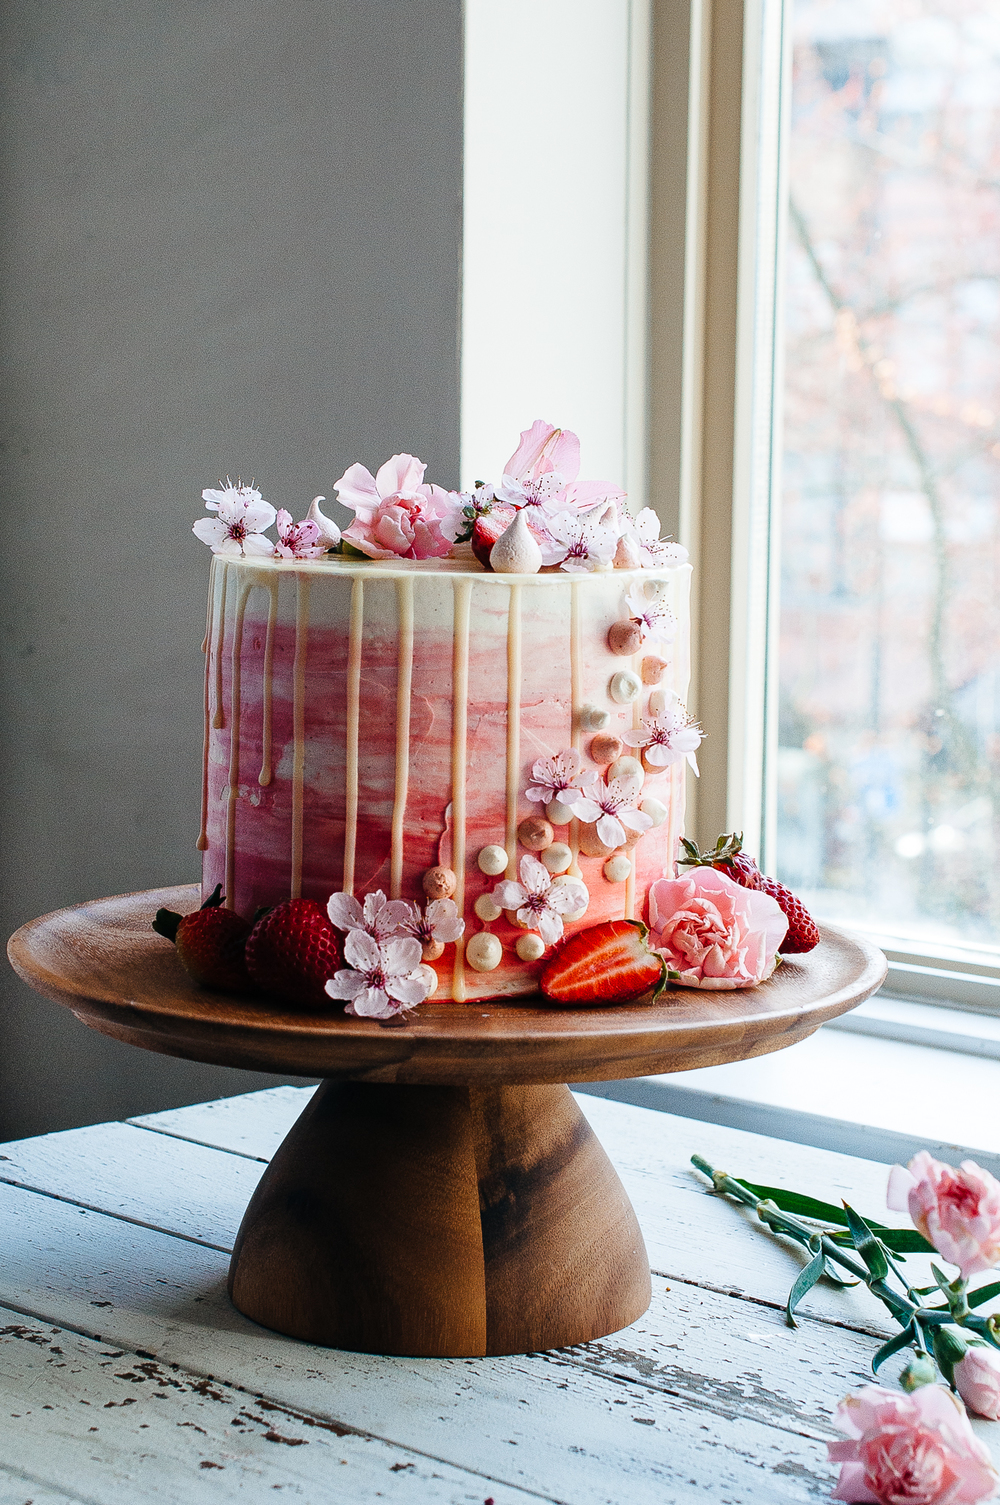 Strawberry and vanilla cake 10.jpg